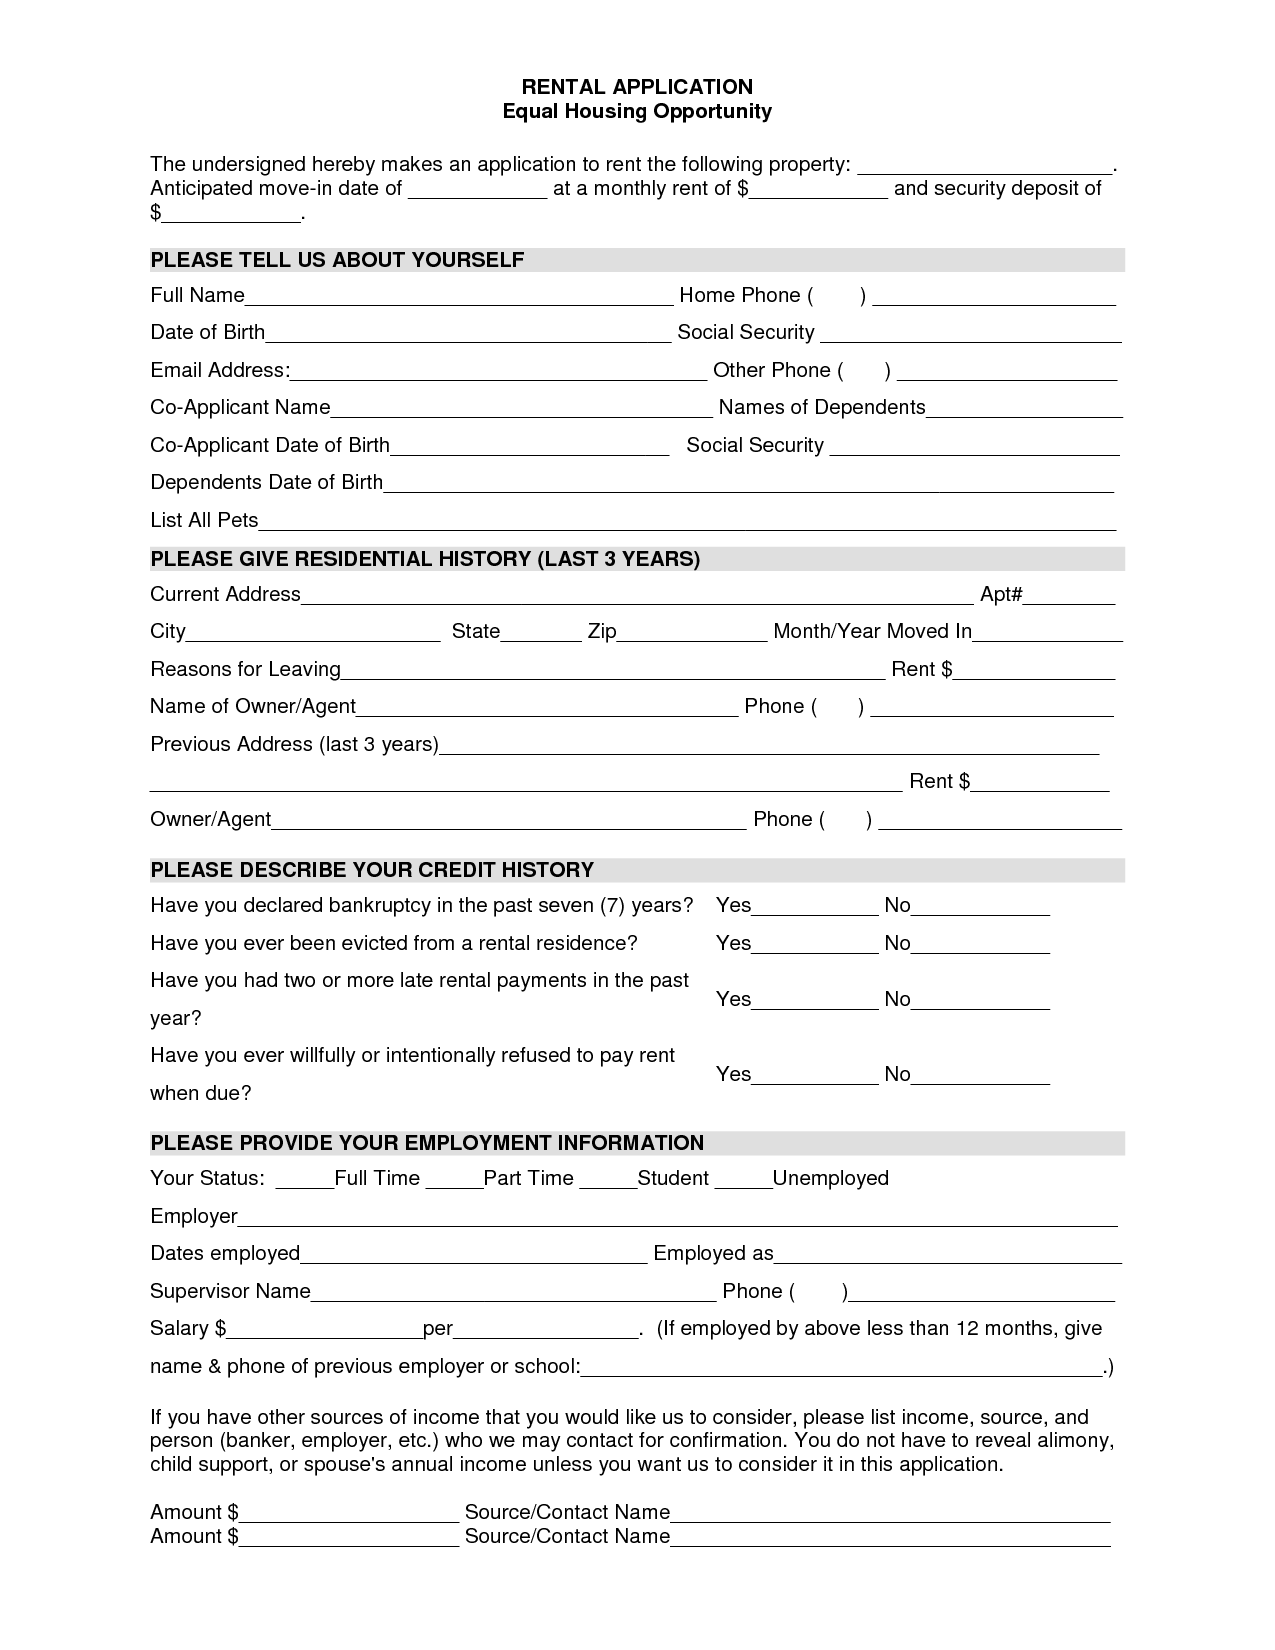 Real estate rental application form template zrom free virginia rental application form pdf template maxwellsz